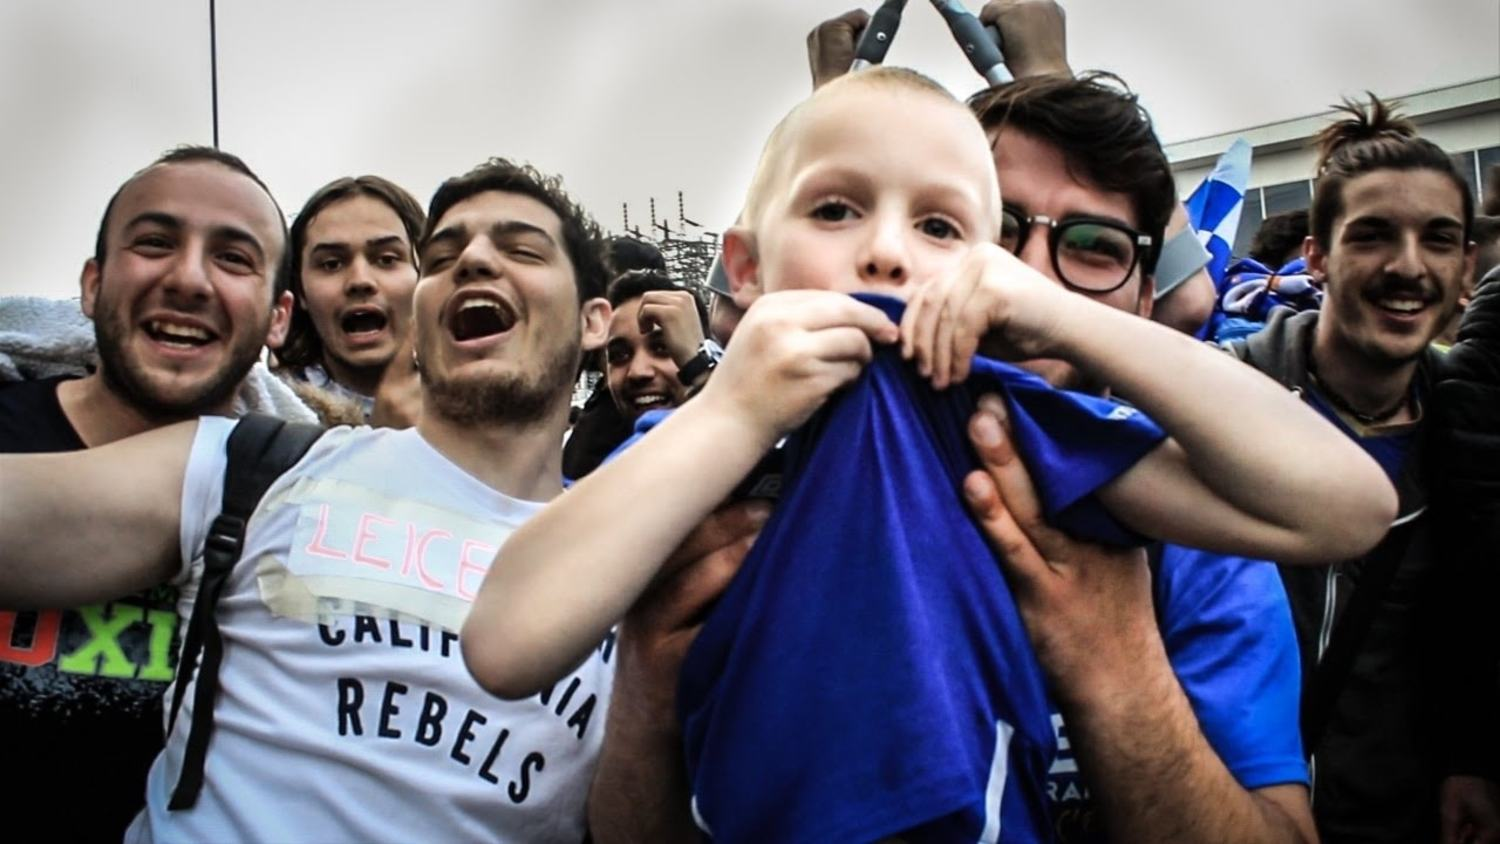 From Milan to Leicester: 2,000 Miles to Celebrate Football's Biggest Day